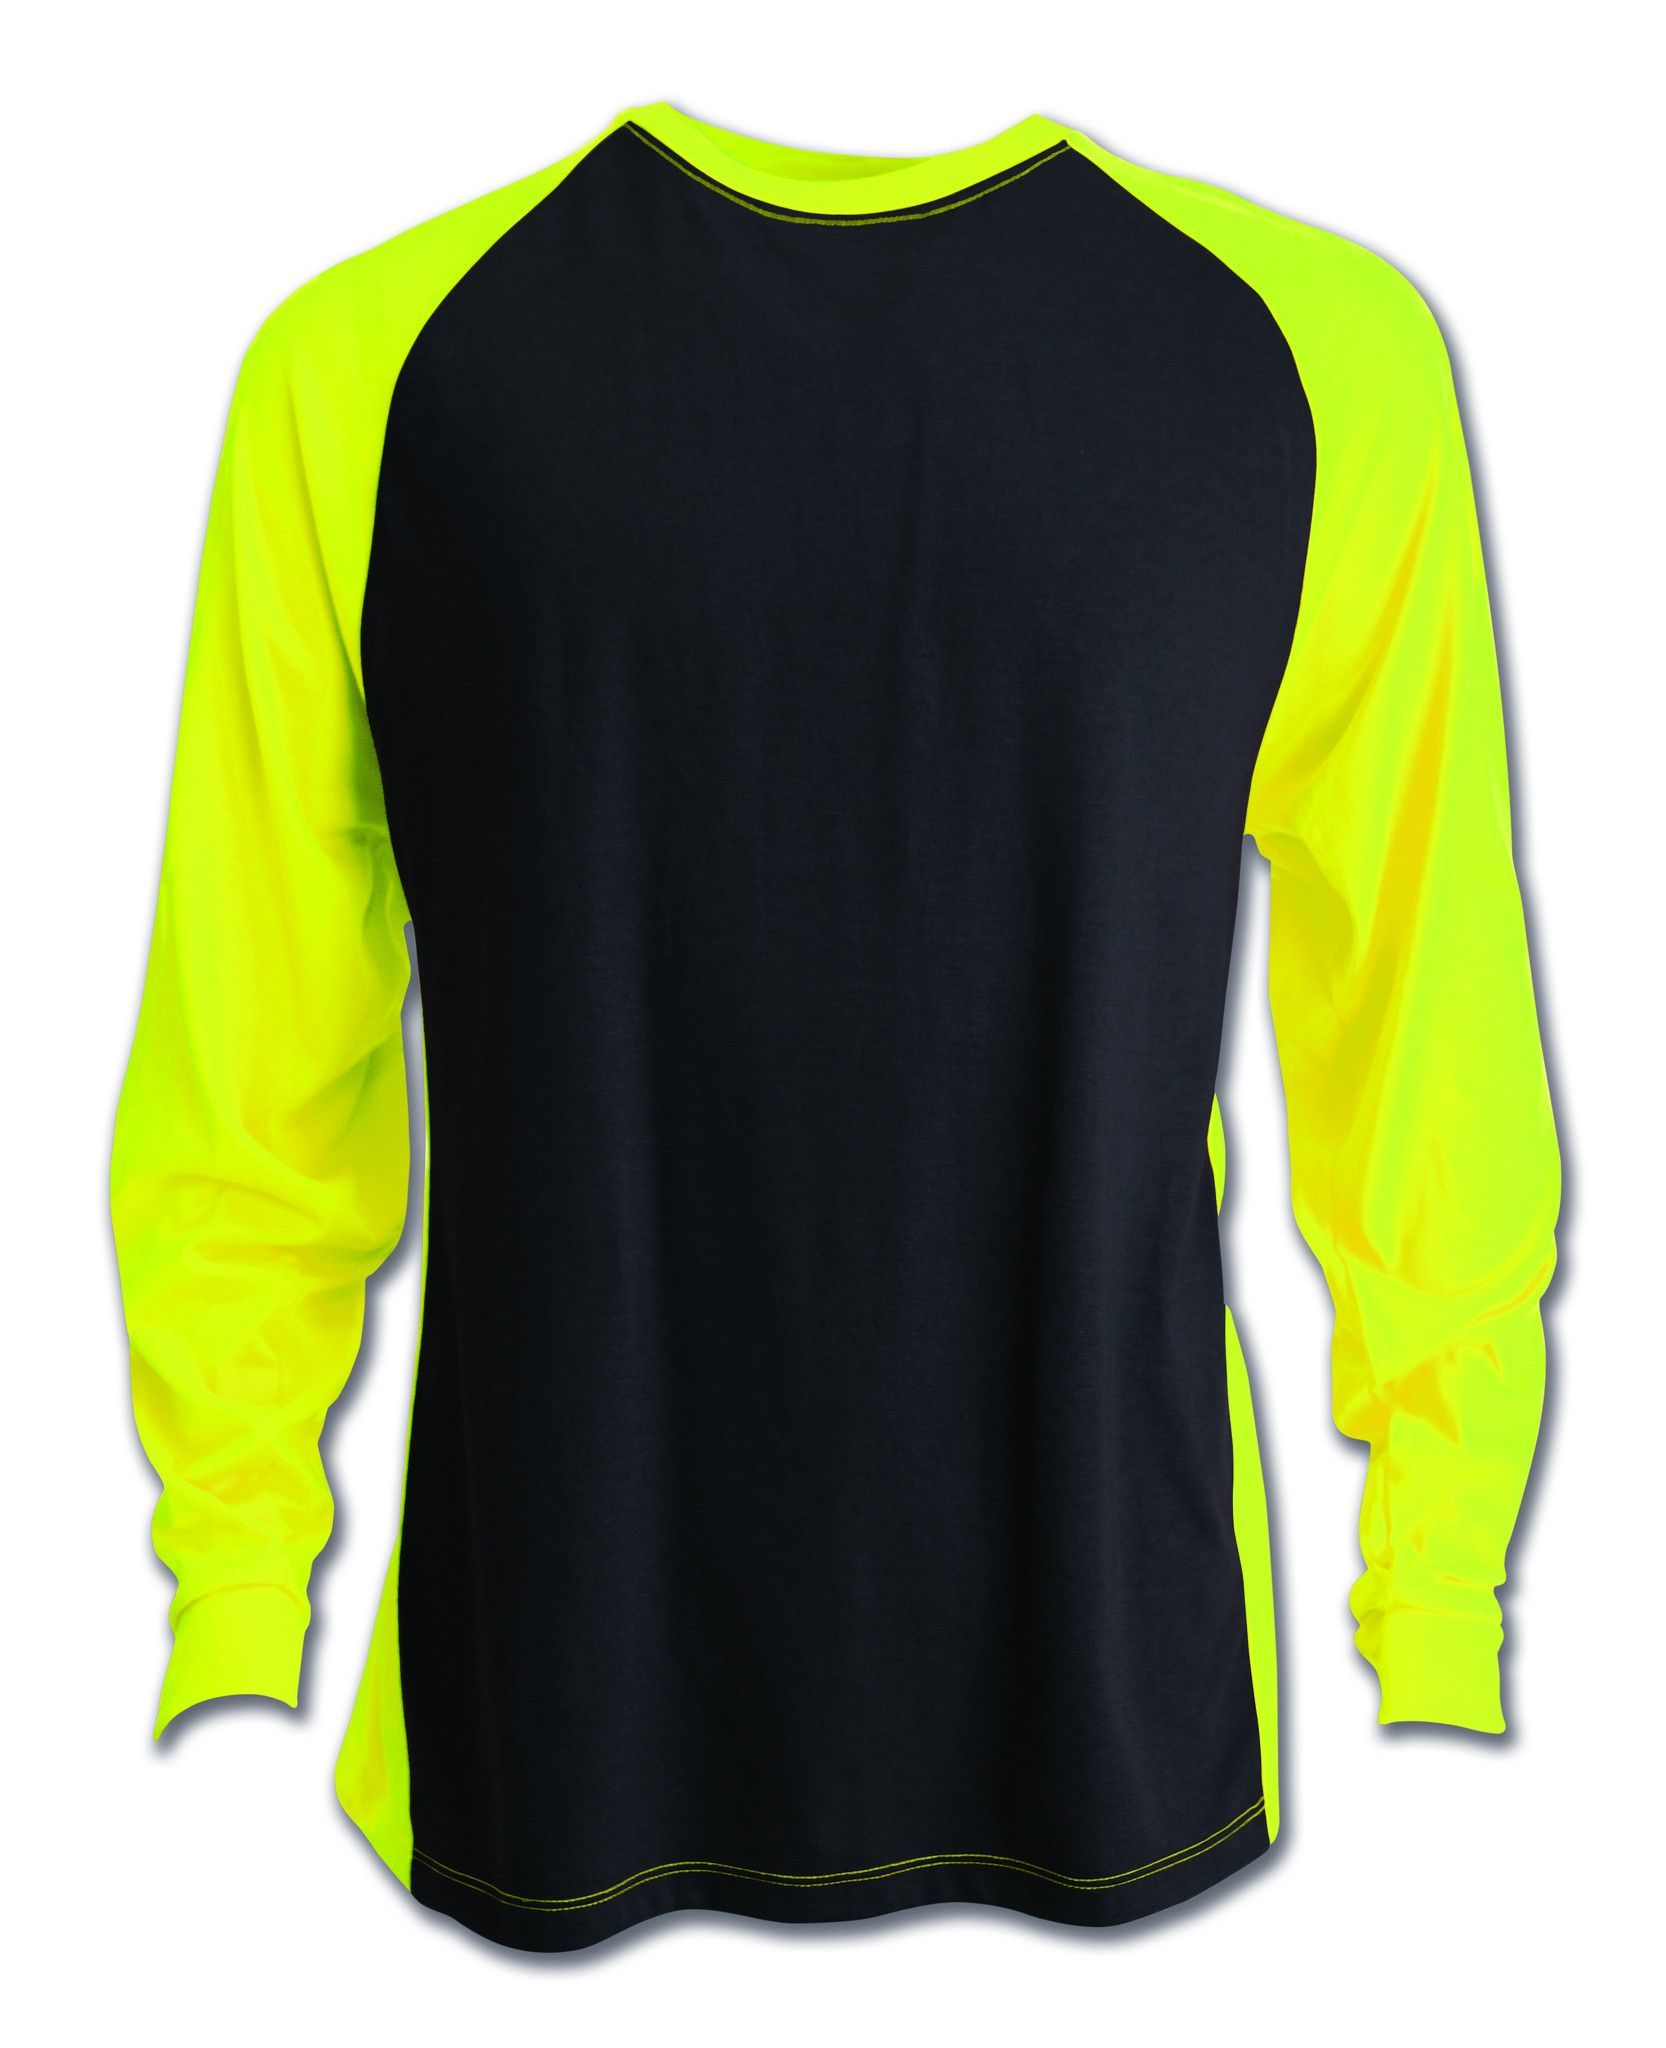 Arborwear Tech T Long Sleeve Shirt - 706586